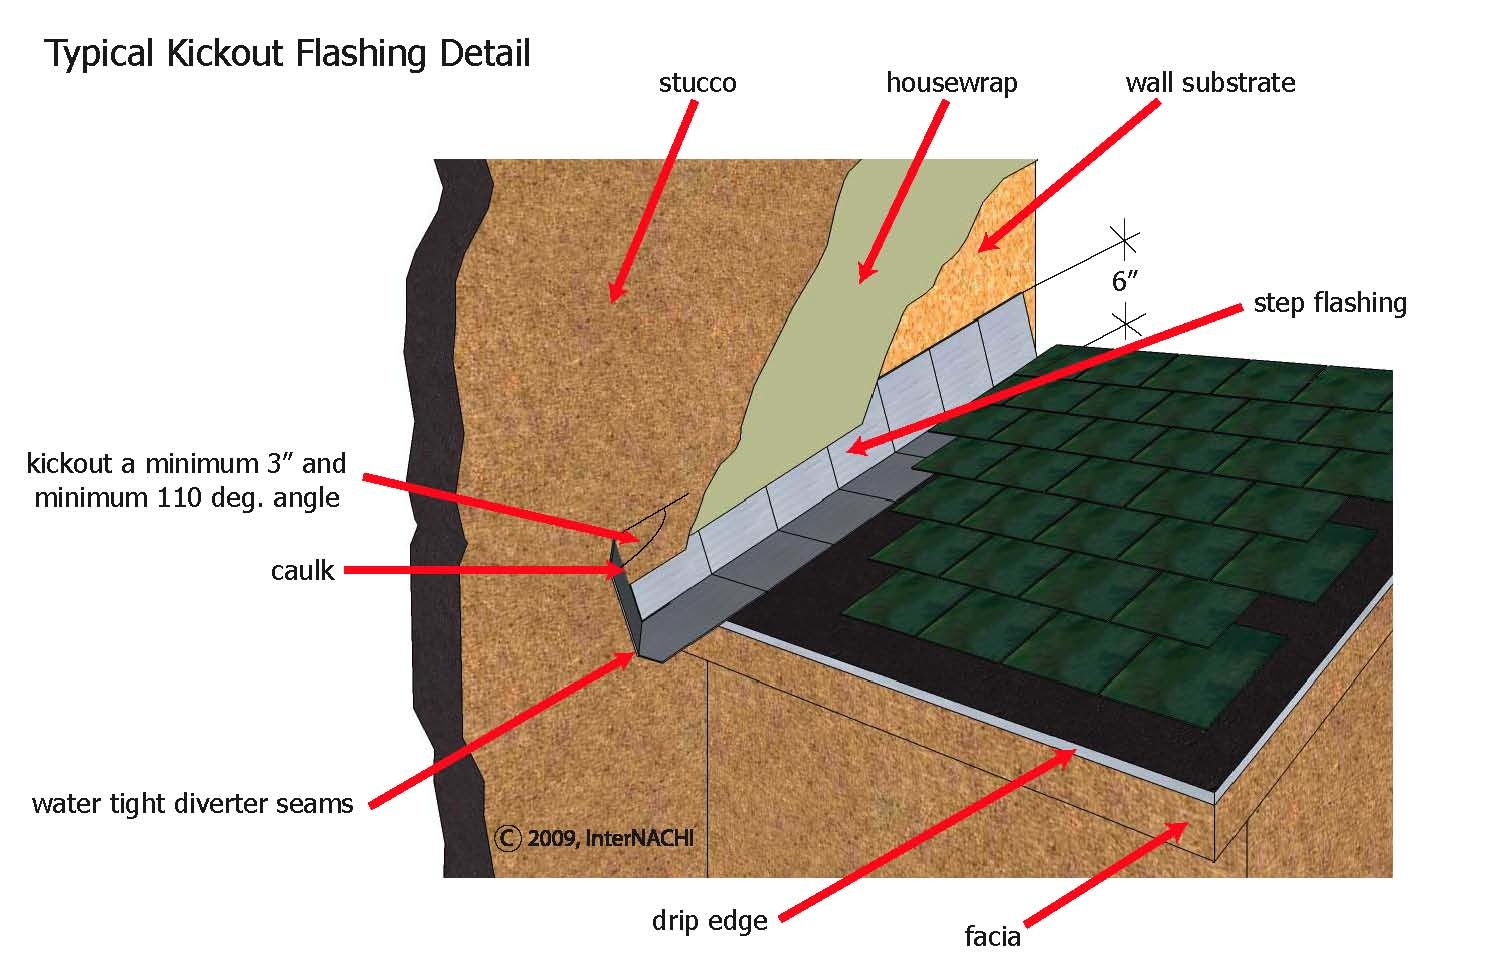 Kick-out flashing diagram